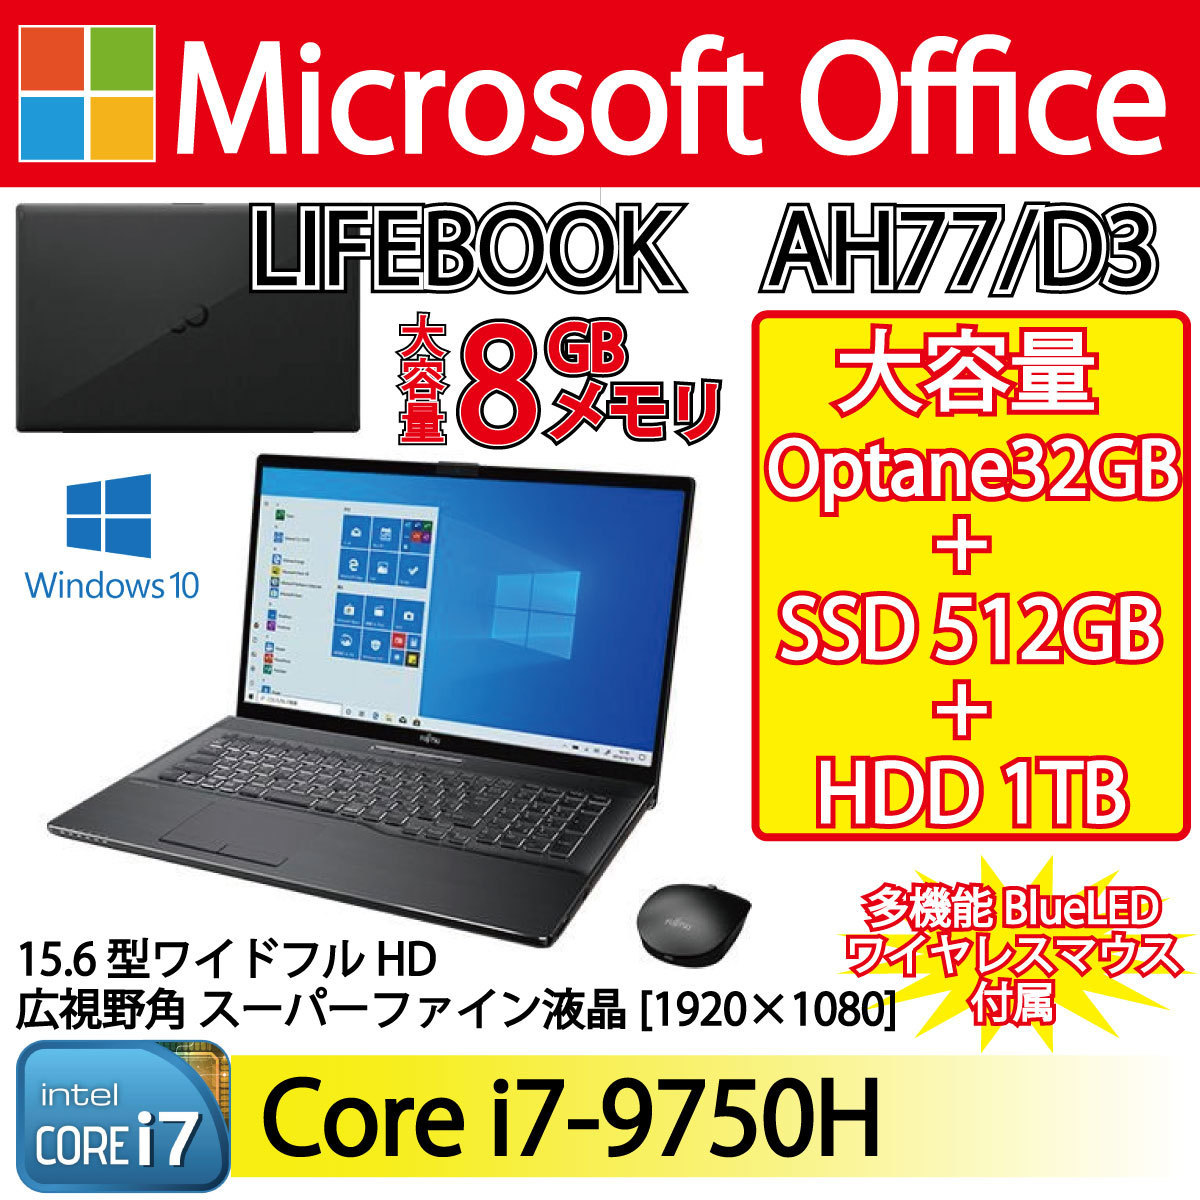 【再生品】LIFEBOOK AH77/D3 /Windows 10 /Core i7-9750H /32GB Optane + 512GB SSD + 1TB 8GB FHD Blu-ray Office ブライトブラック_画像1